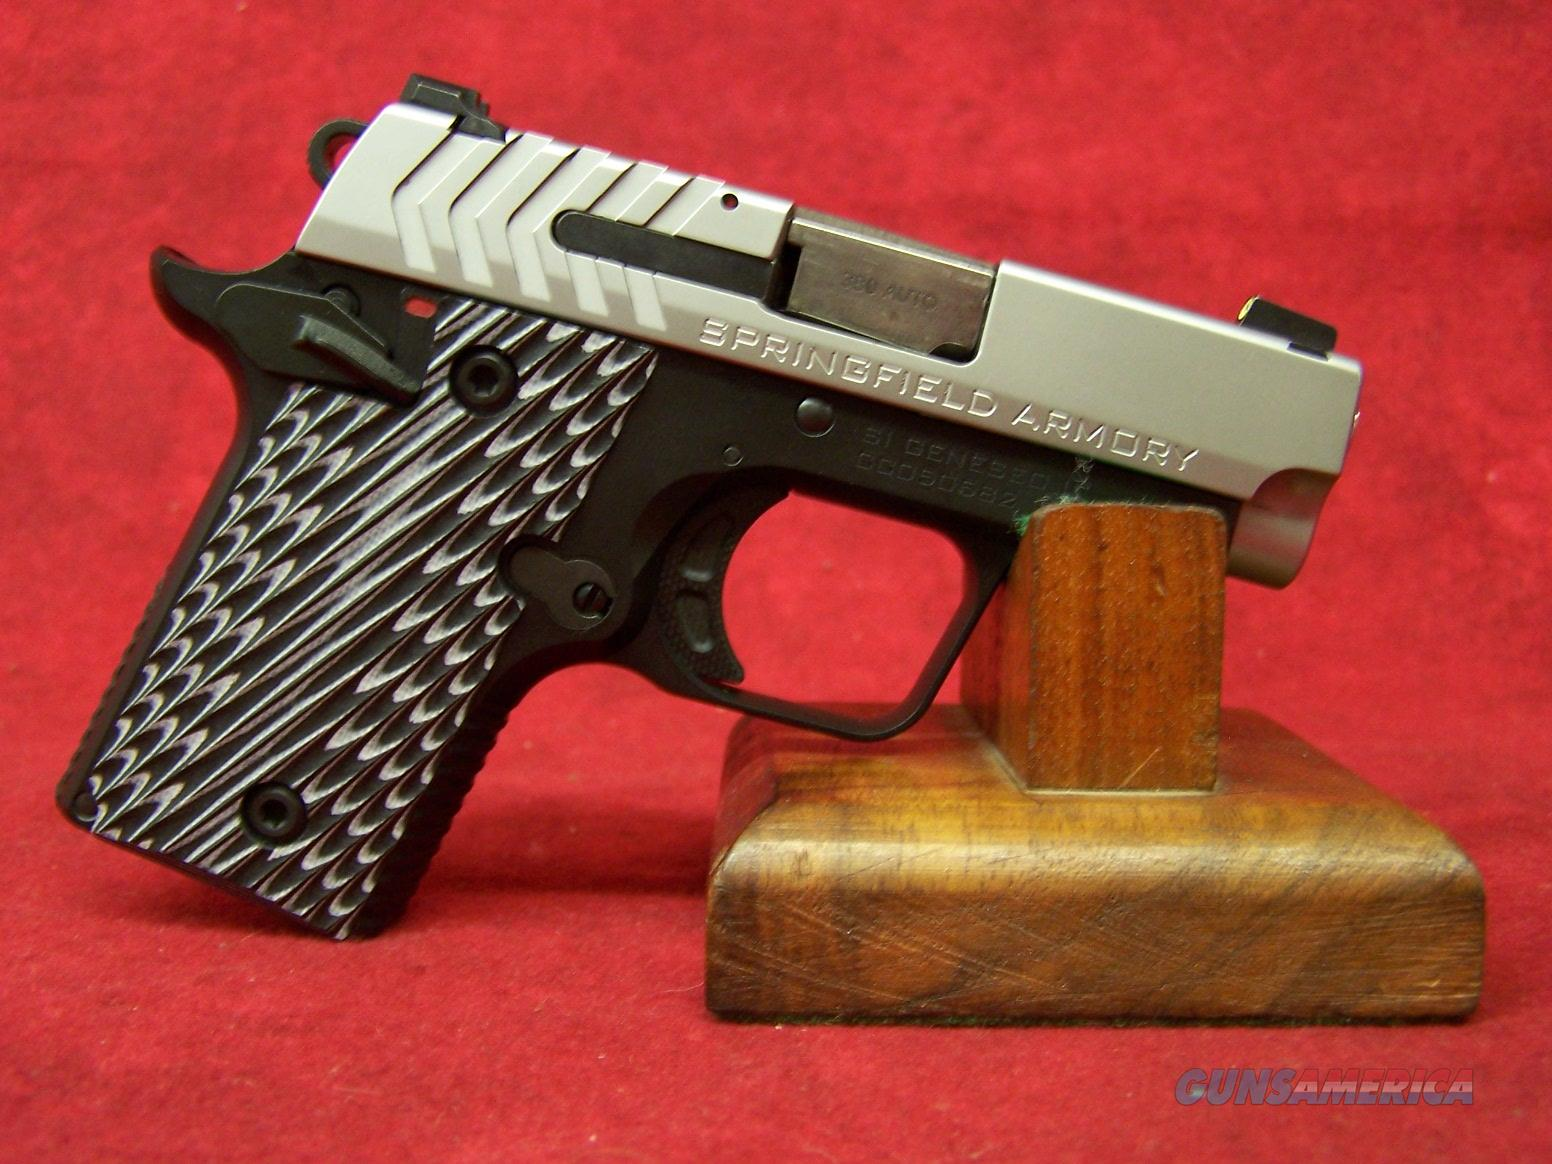 "Springfield Armory 911 .380 ACP Stainless 2.7"" Barrel (PG9109S)  Guns > Pistols > Springfield Armory Pistols > 1911 Type"